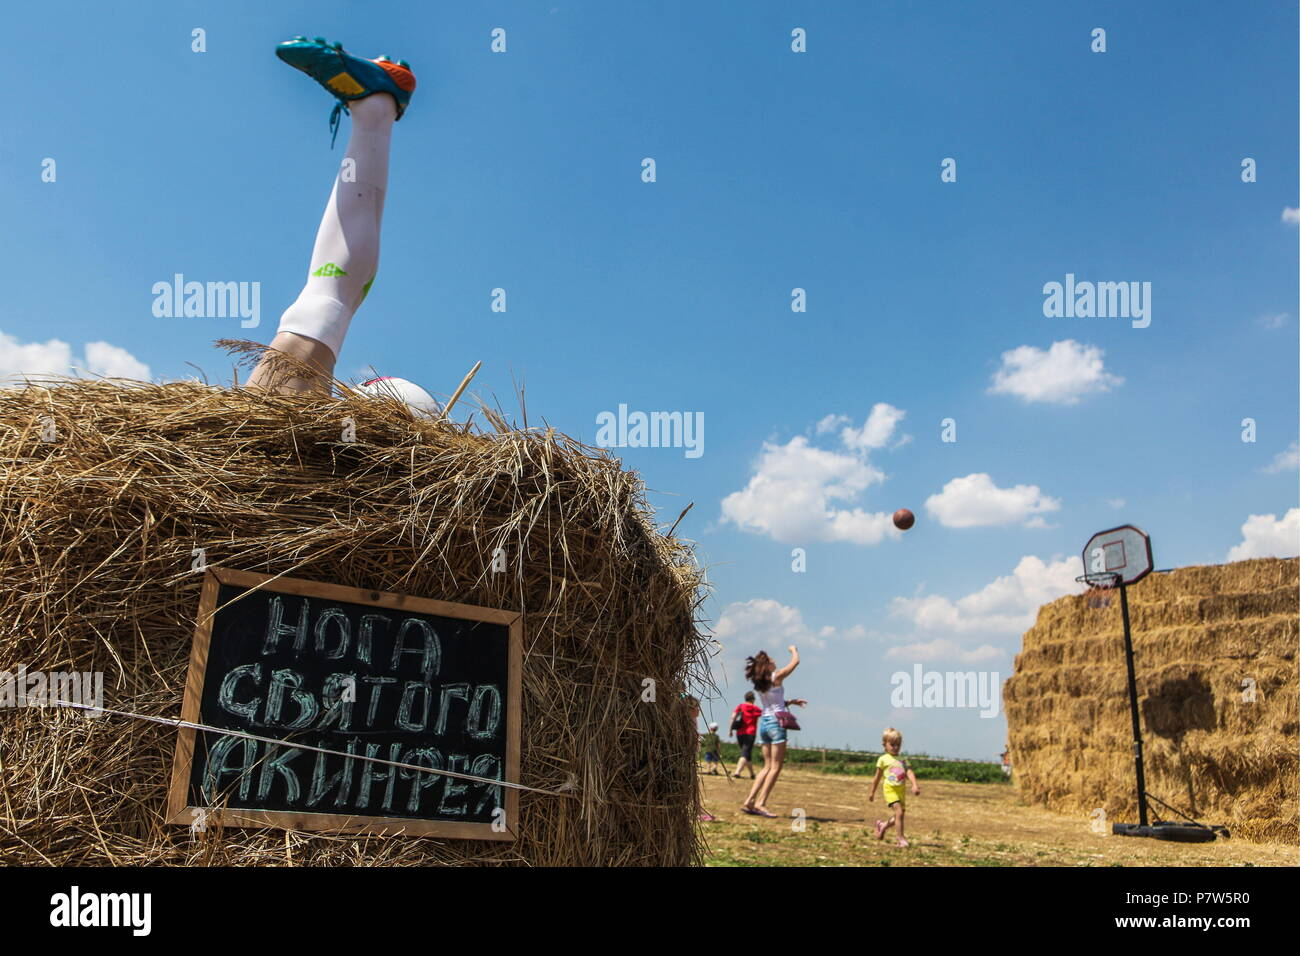 Russia. 08th July, 2018. STAVROPOL TERRITORY, RUSSIA - JULY 8, 2018: A monument to the left foot of Russian goalkeeper Igor Akinfeev at a field of farmer Roman Ponomarev in the village of Krasnoye, Grachyovak District. The art object marks the save Akinfeev made with his leg during a penalty shootout in the 2018 FIFA World Cup Round of 16 football match against Spain. Denis Abramov/TASS Credit: ITAR-TASS News Agency/Alamy Live News - Stock Image